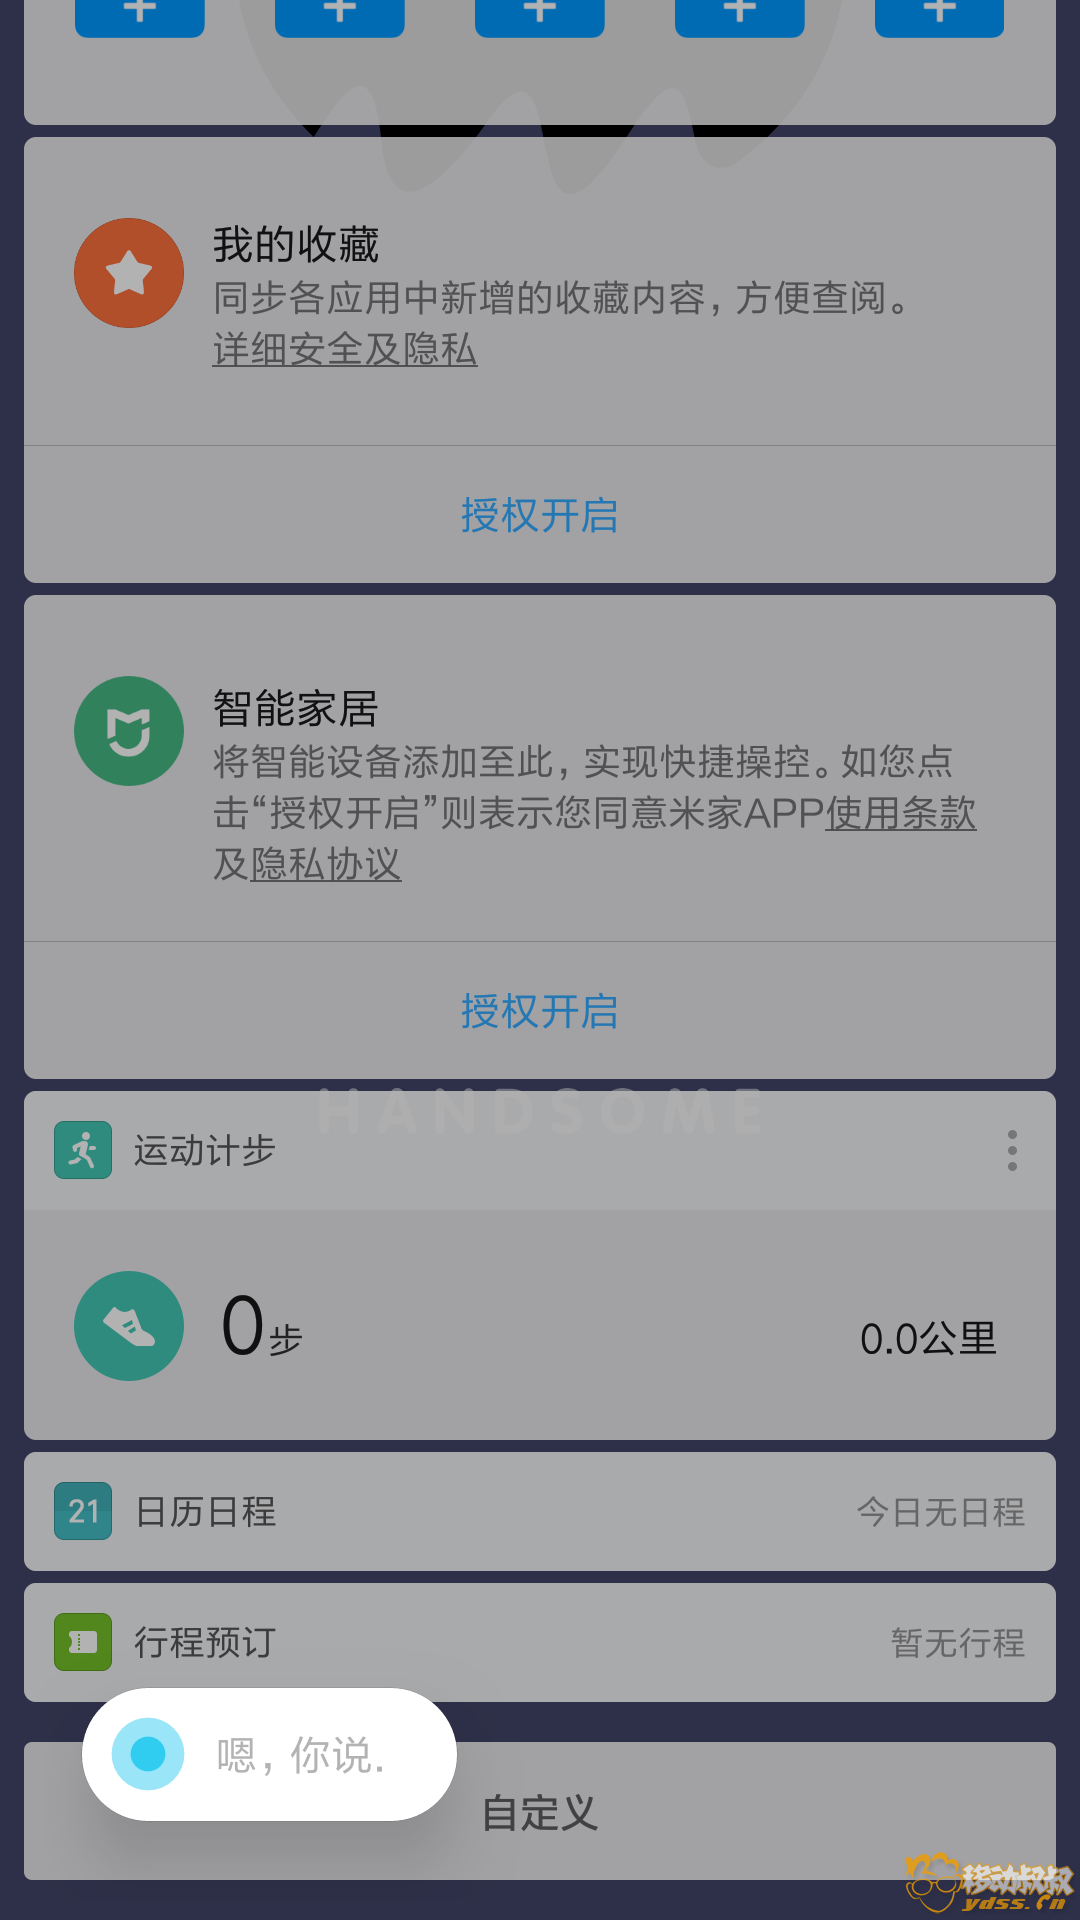 Screenshot_2018-07-21-23-05-38-829_com.miui.home.png